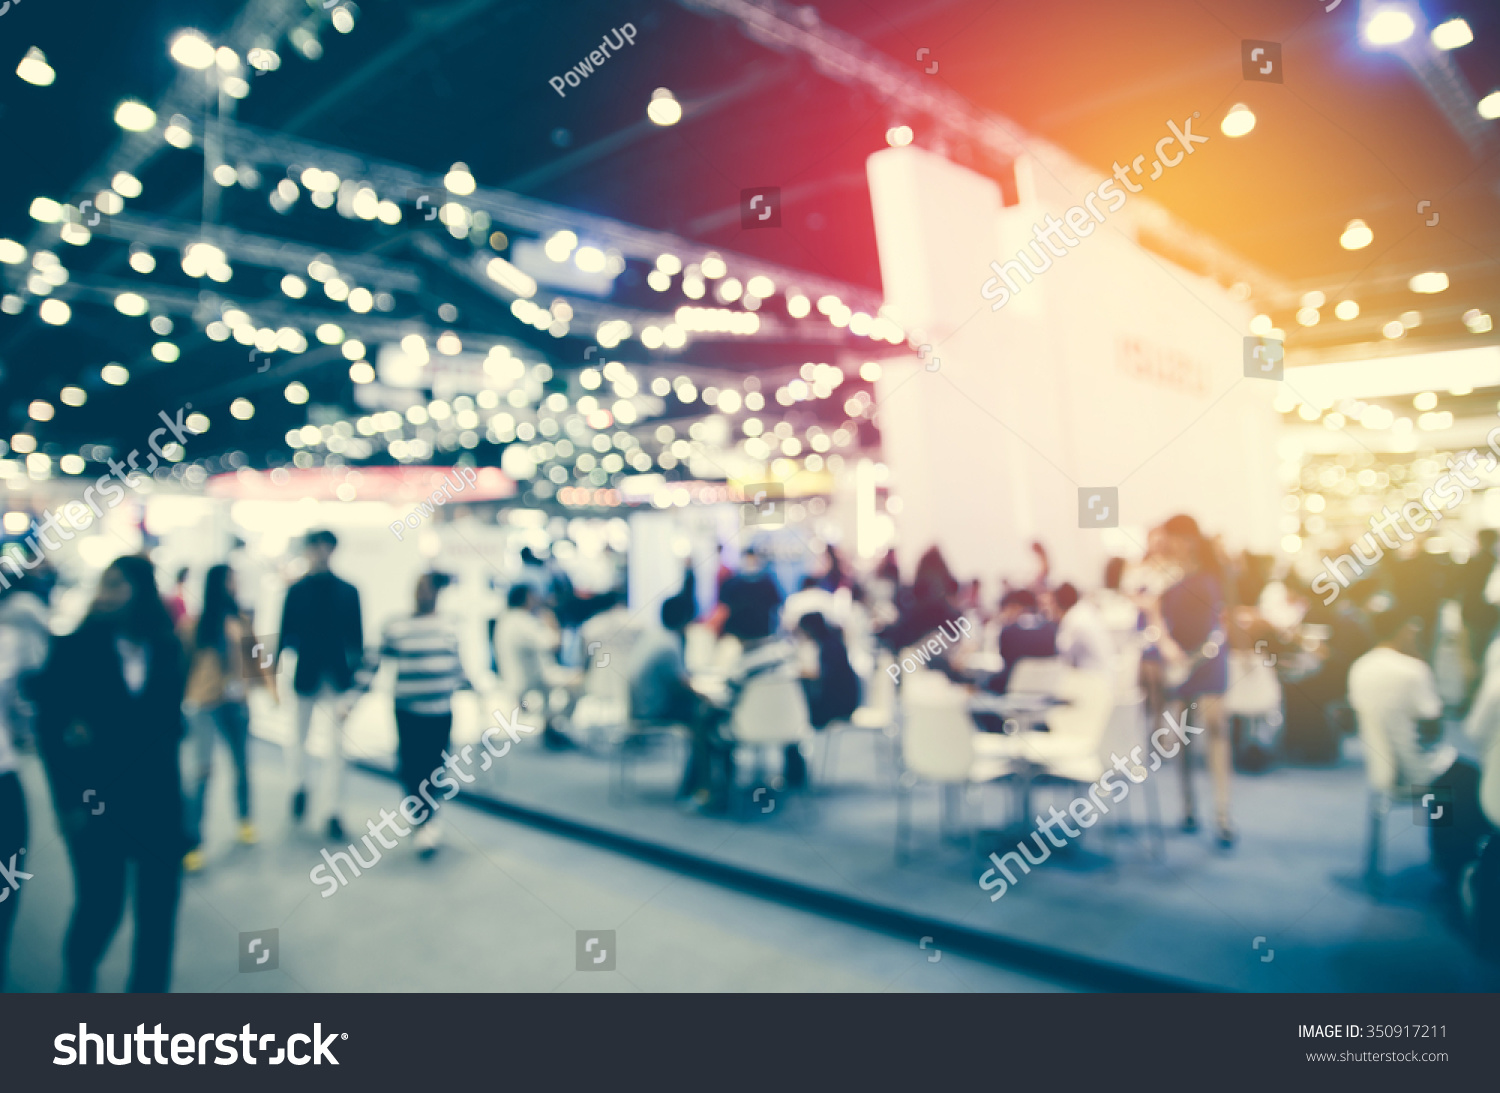 abstract blurred event with people for background #350917211